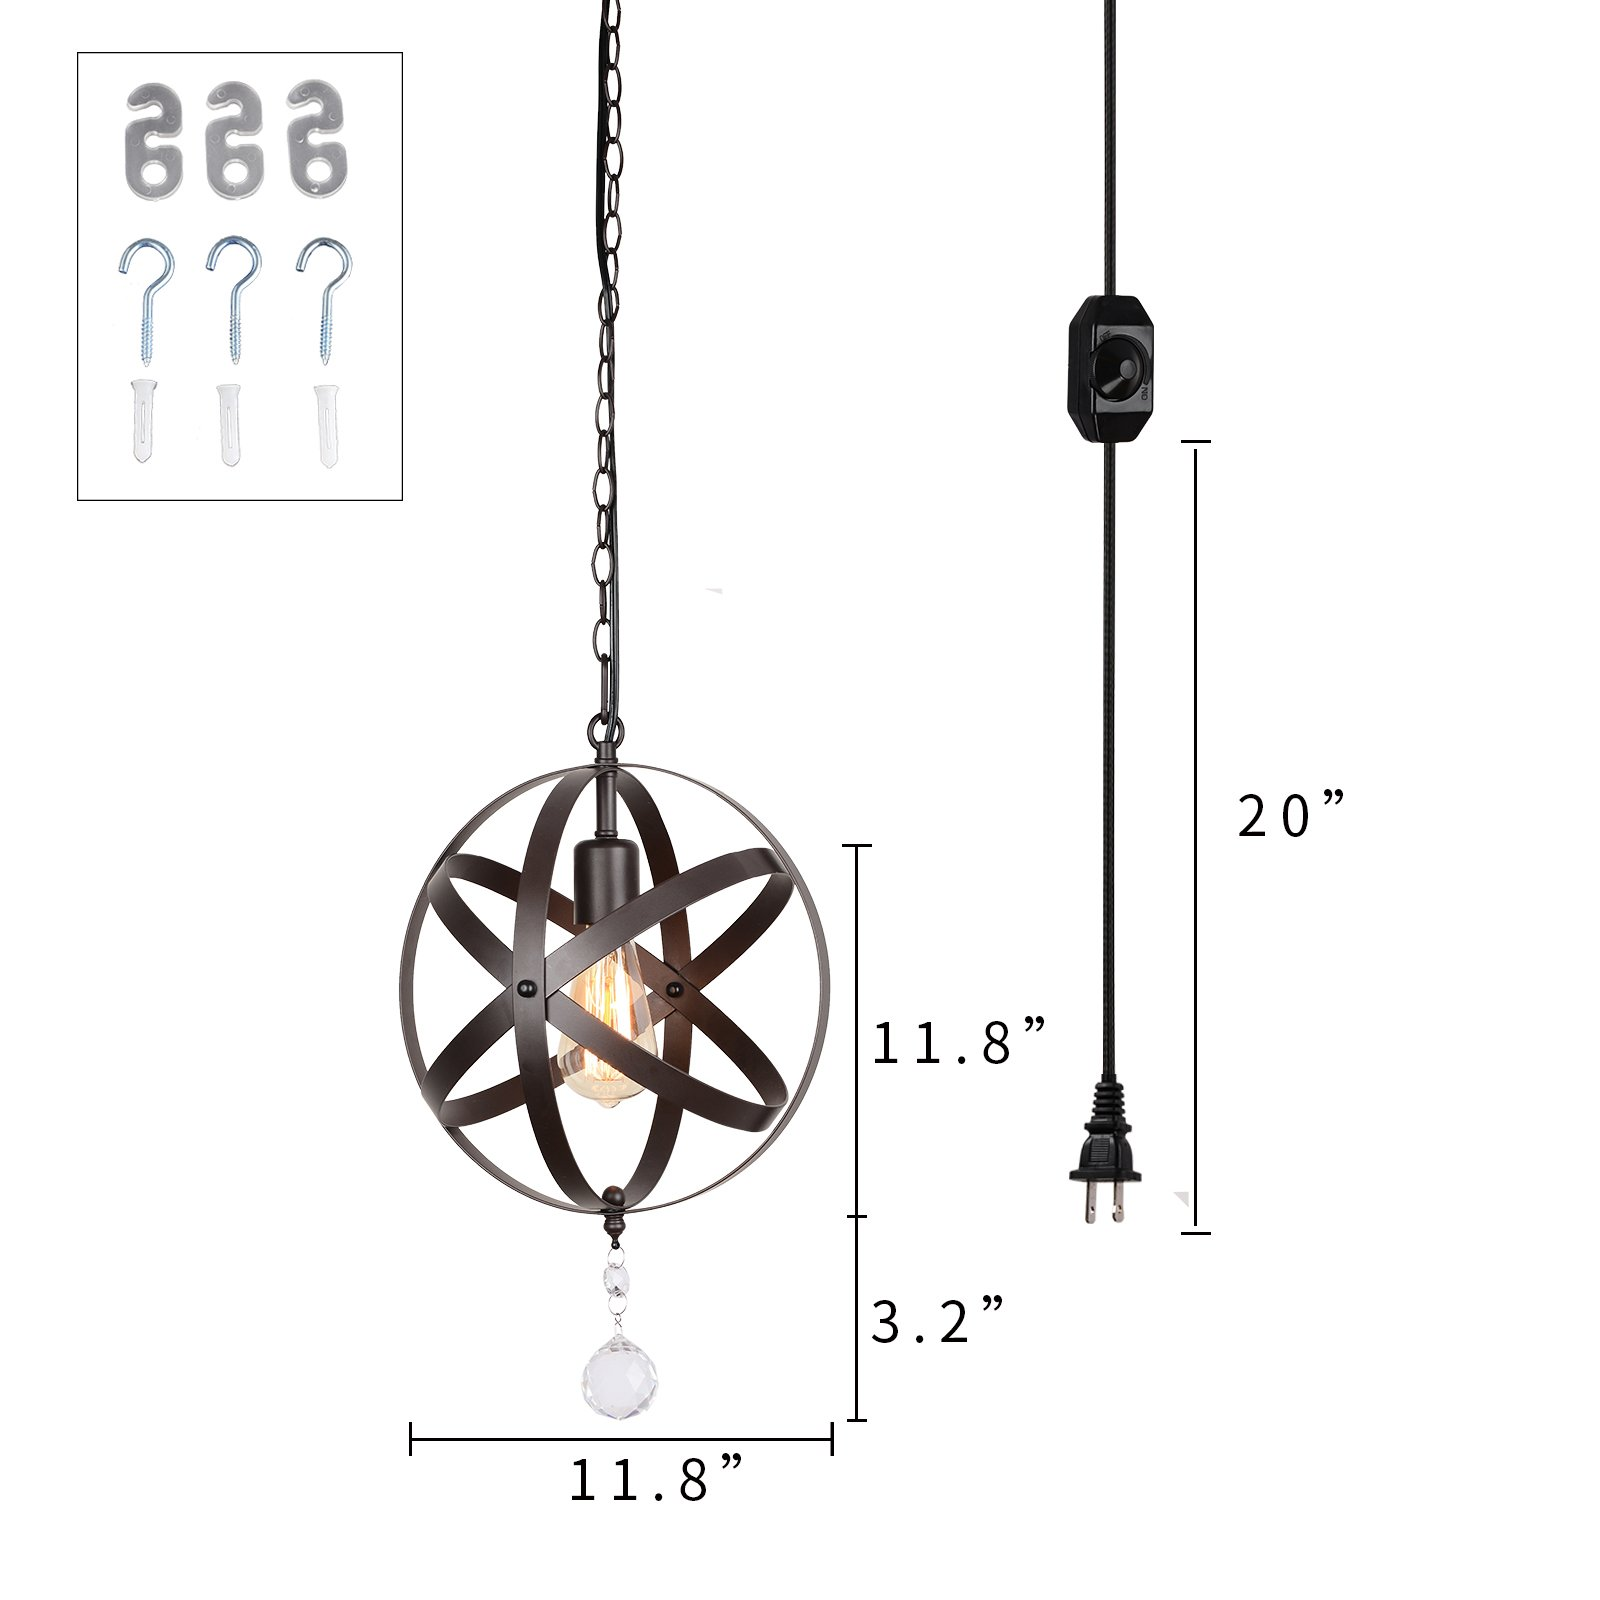 Creatgeek Industrial Globe Chandelier with 15 Ft Plug in Cord, Metal Hanging Chain and On/Off Dimmer Switch, Perfect Vintage Oil Rubbed Bronze Orb Swag Pendant Lights for Home Decor by Creatgeek (Image #7)